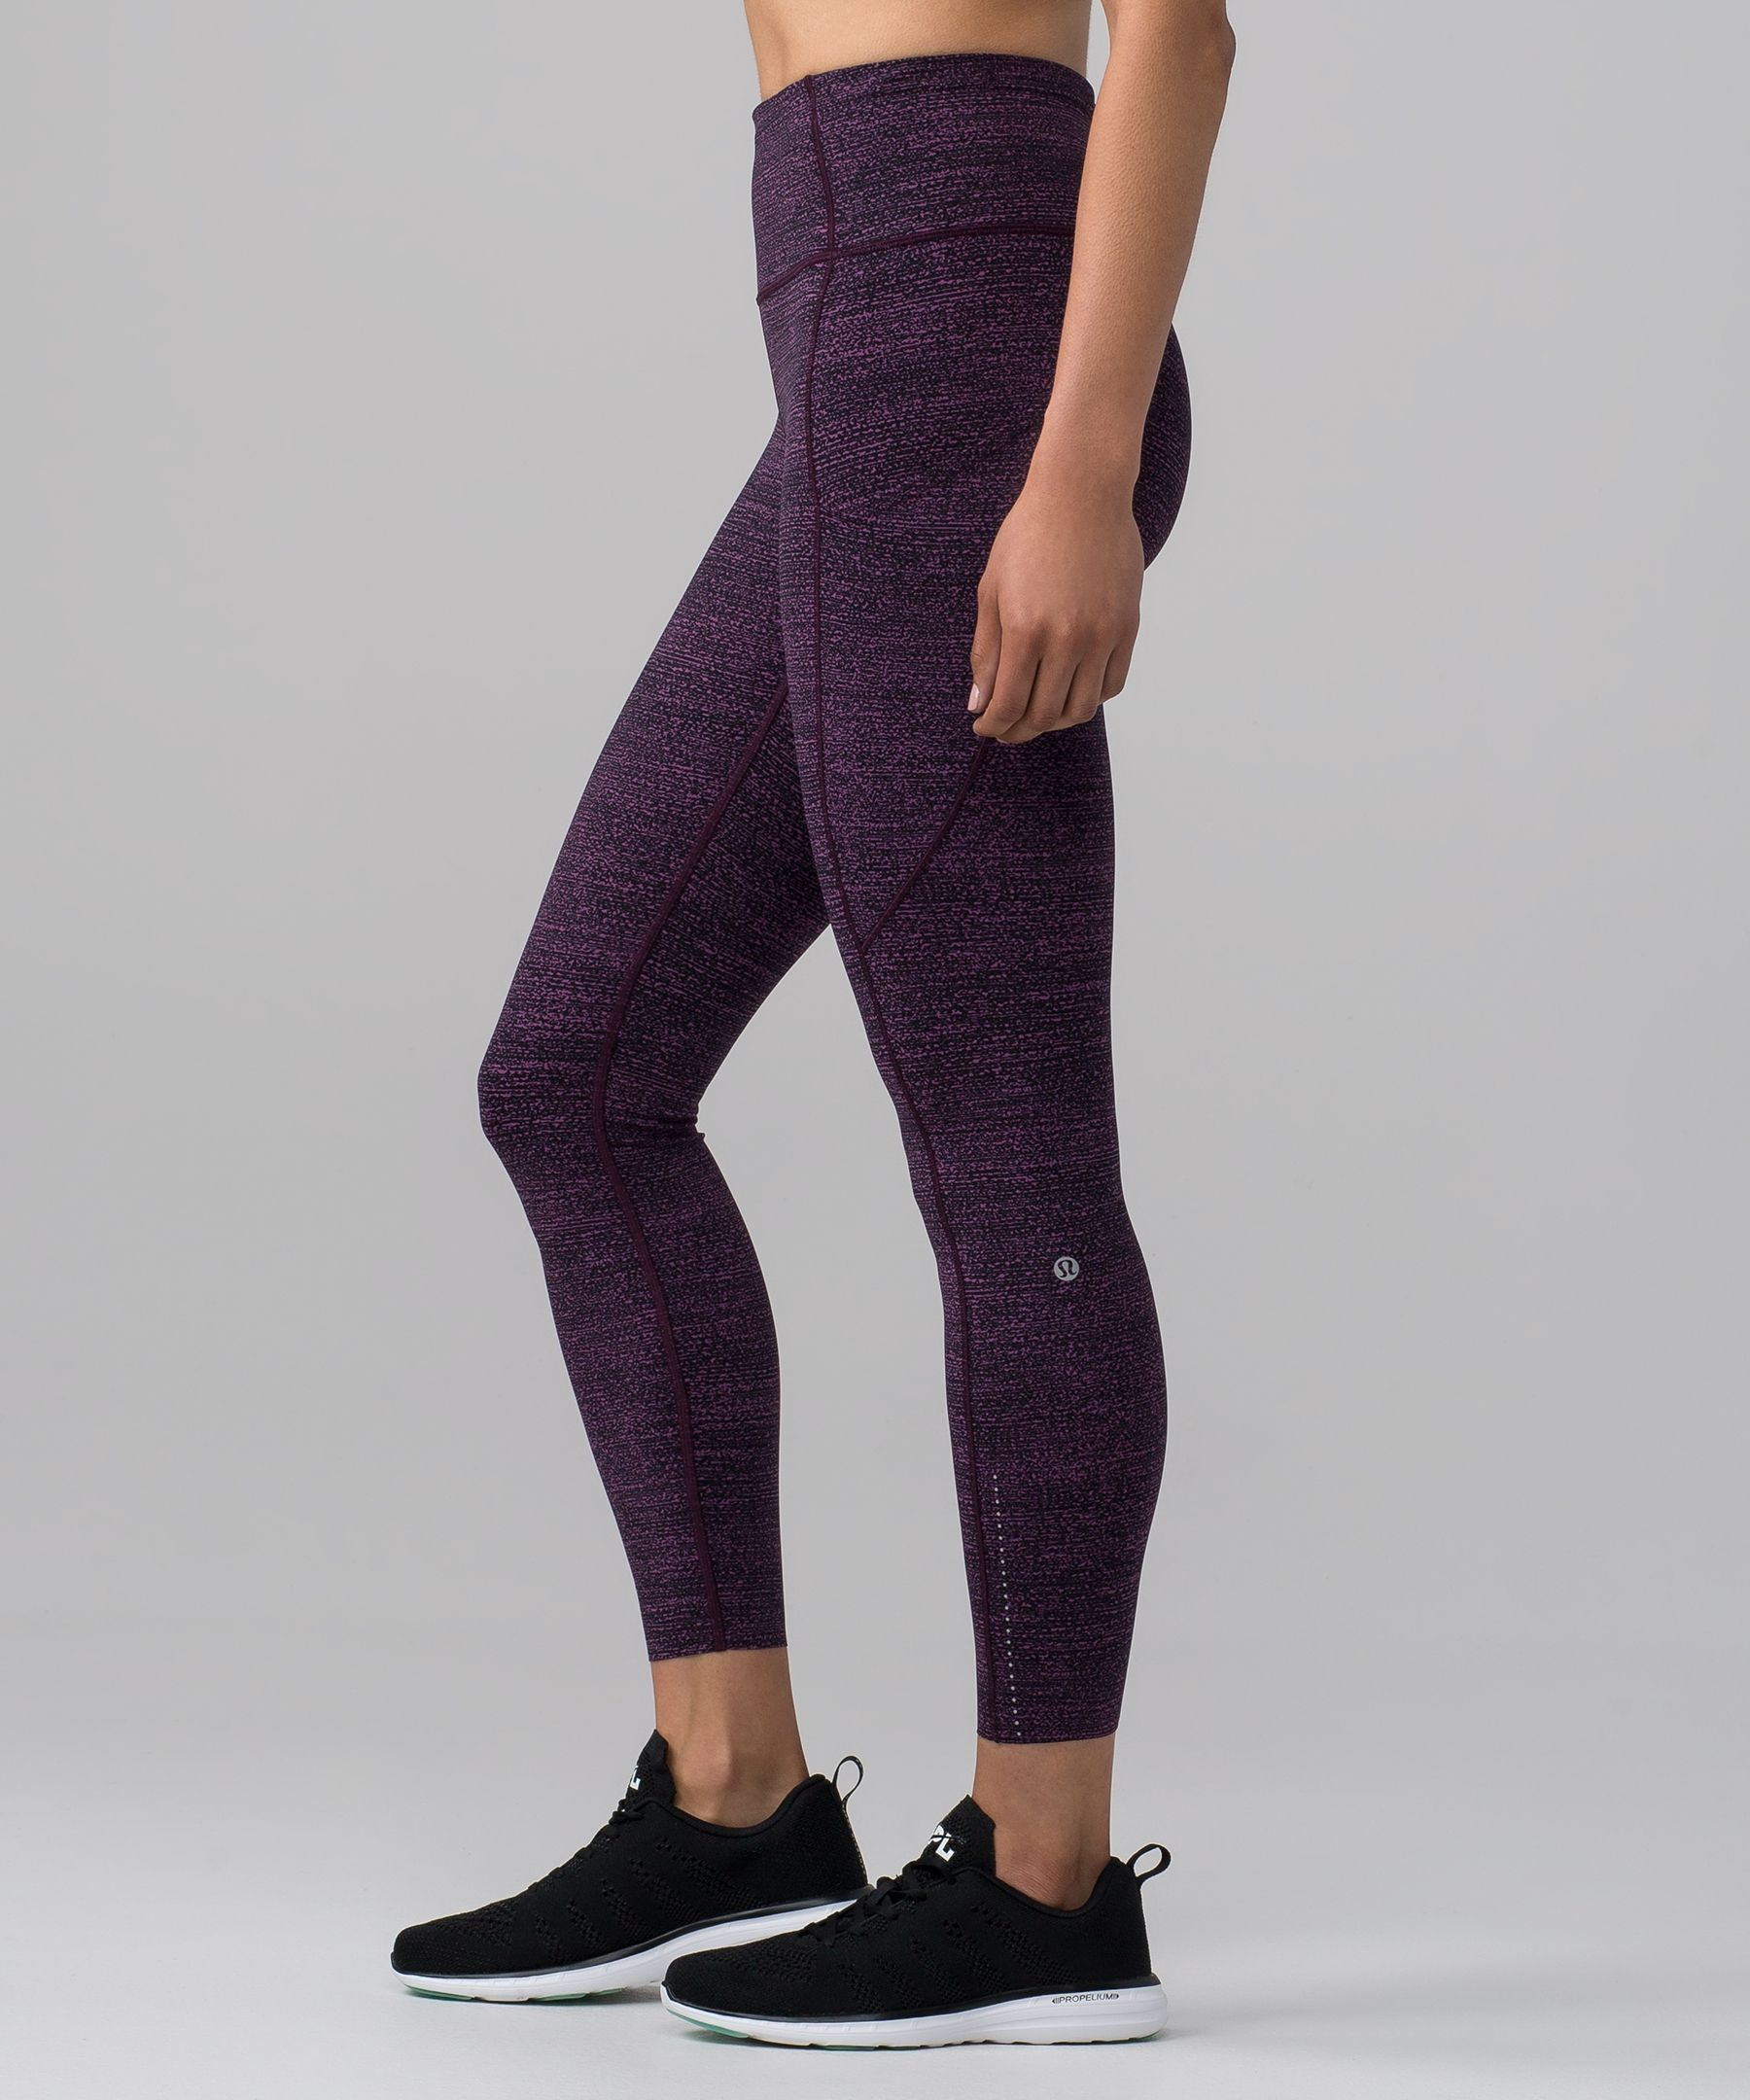 d3f1976c5b3c6 Feel fast and free in these barely there, sweat-wicking run tights ...